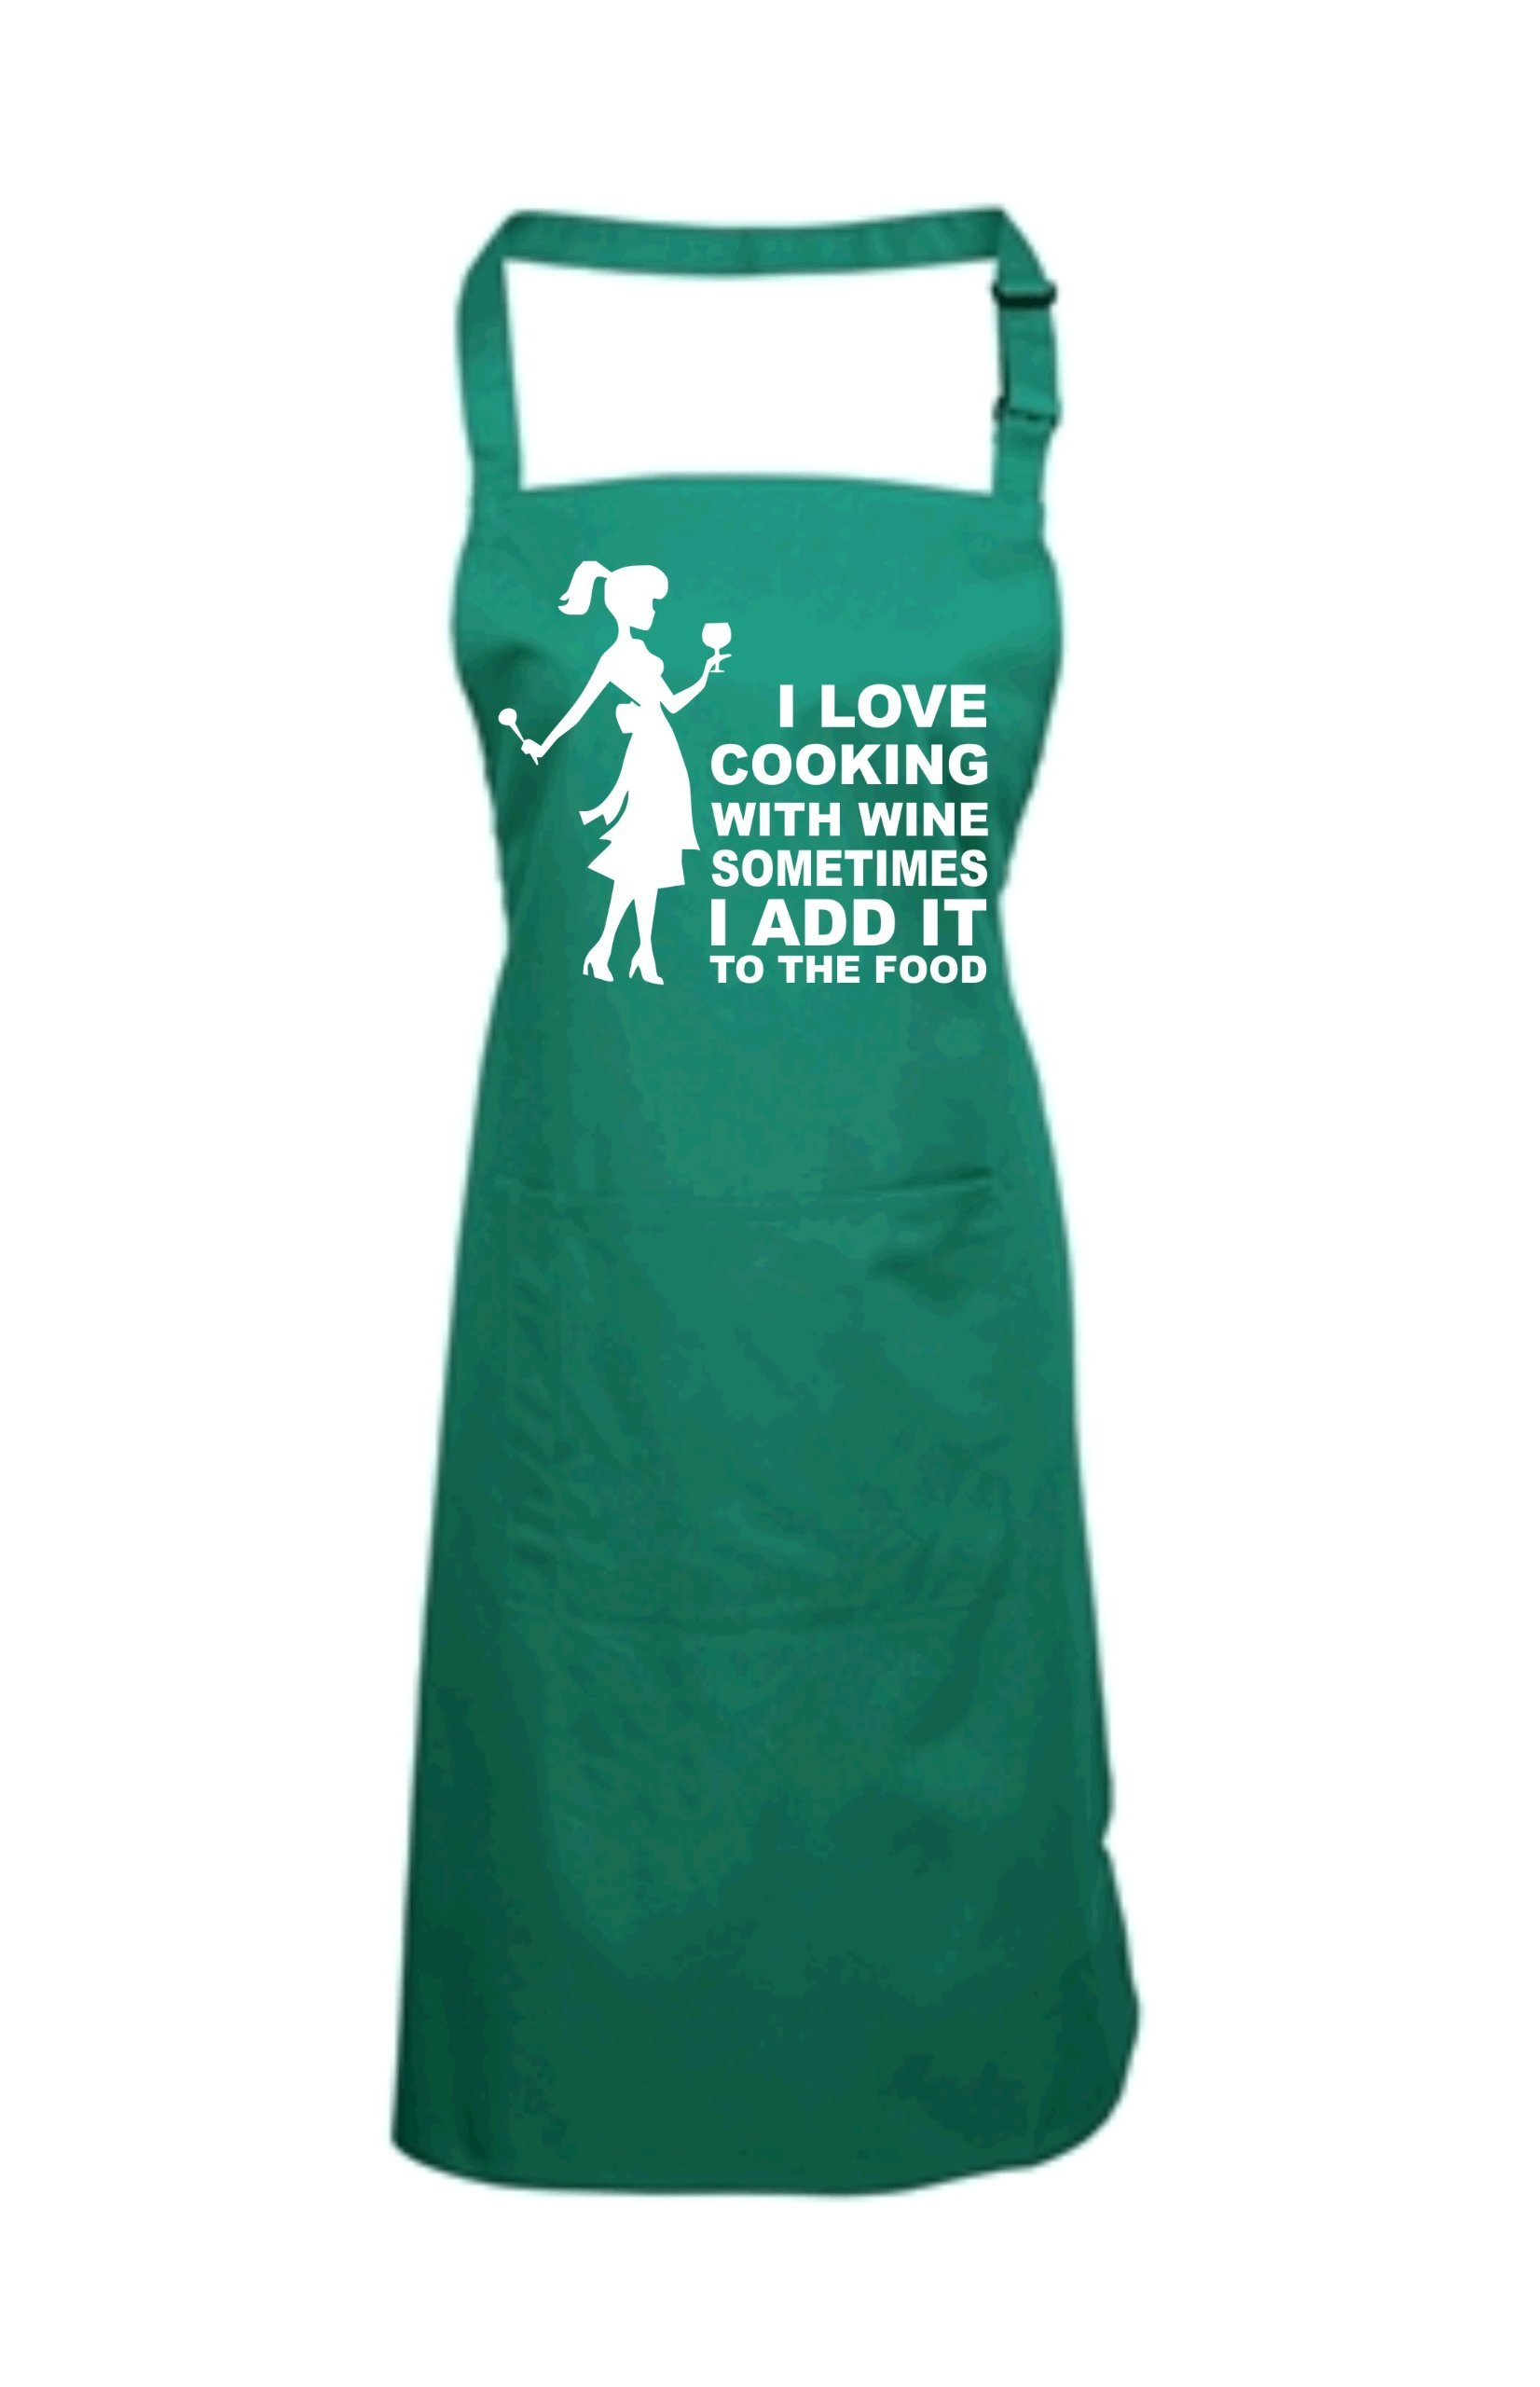 Edward Sinclair Women's I Love Cooking With Wine Sometimes I Add It To The Food With Female Image Apron One Size Bottle Green